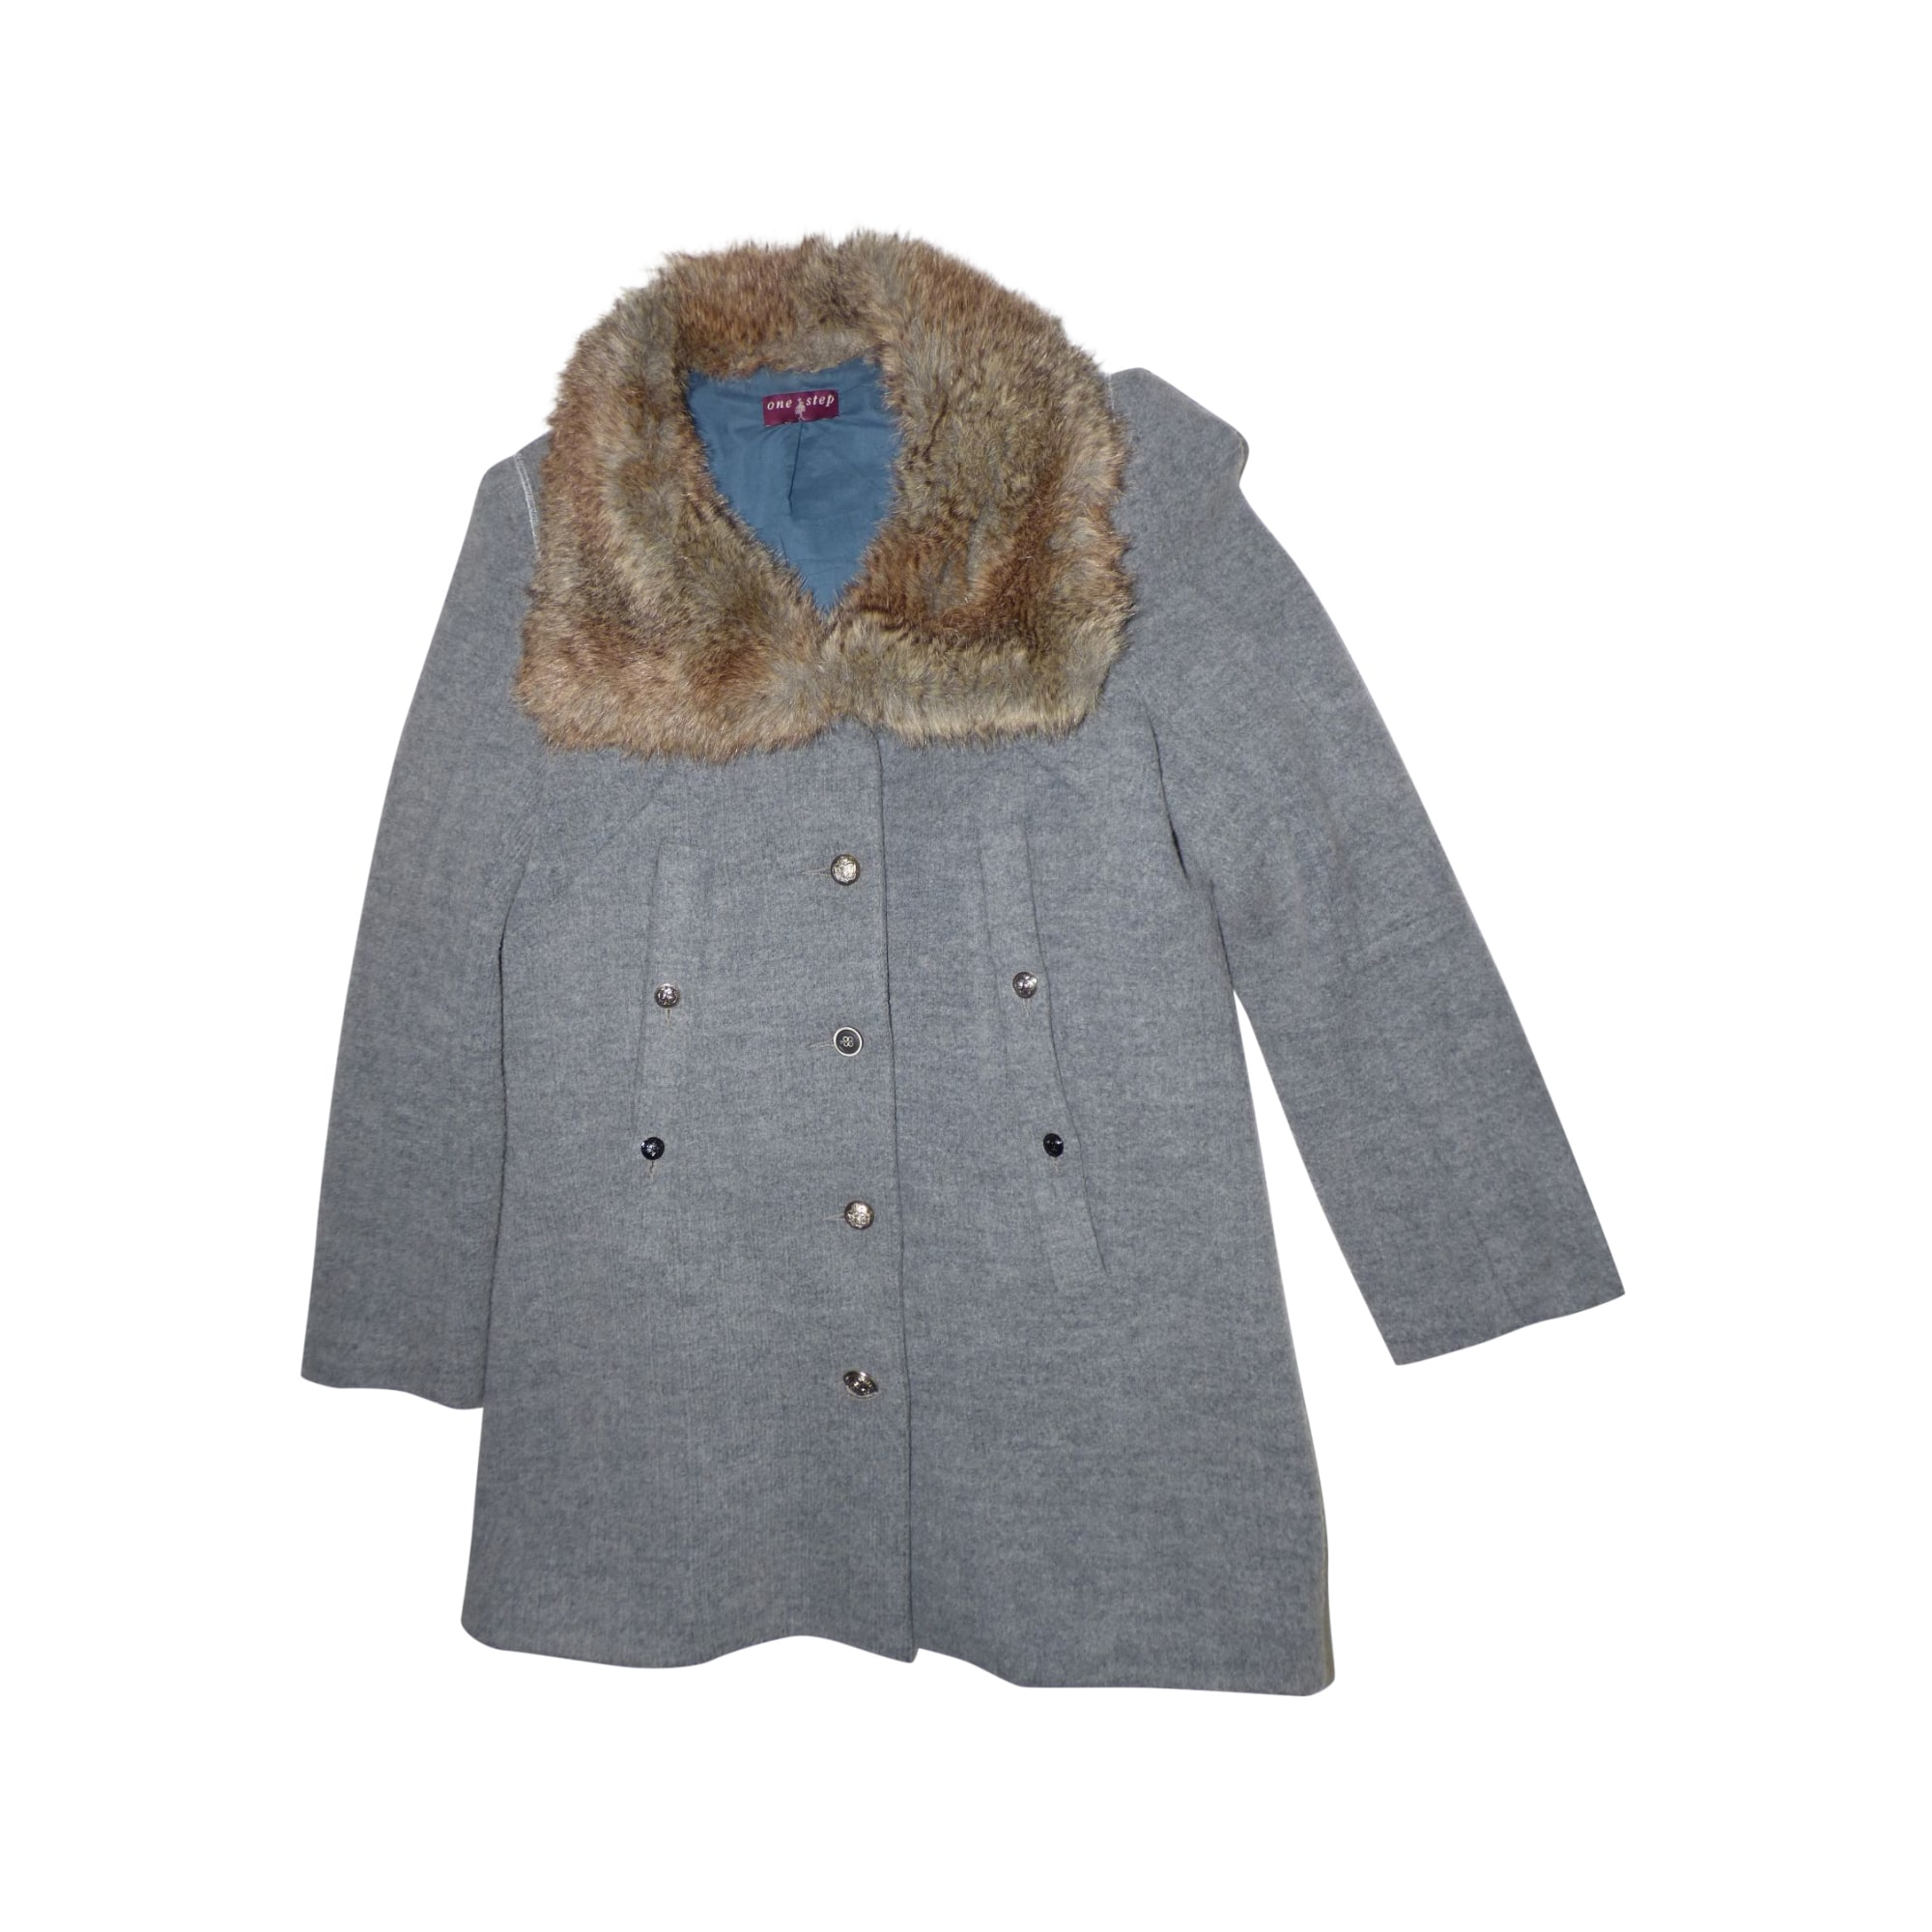 Manteau ONE STEP Gris, anthracite